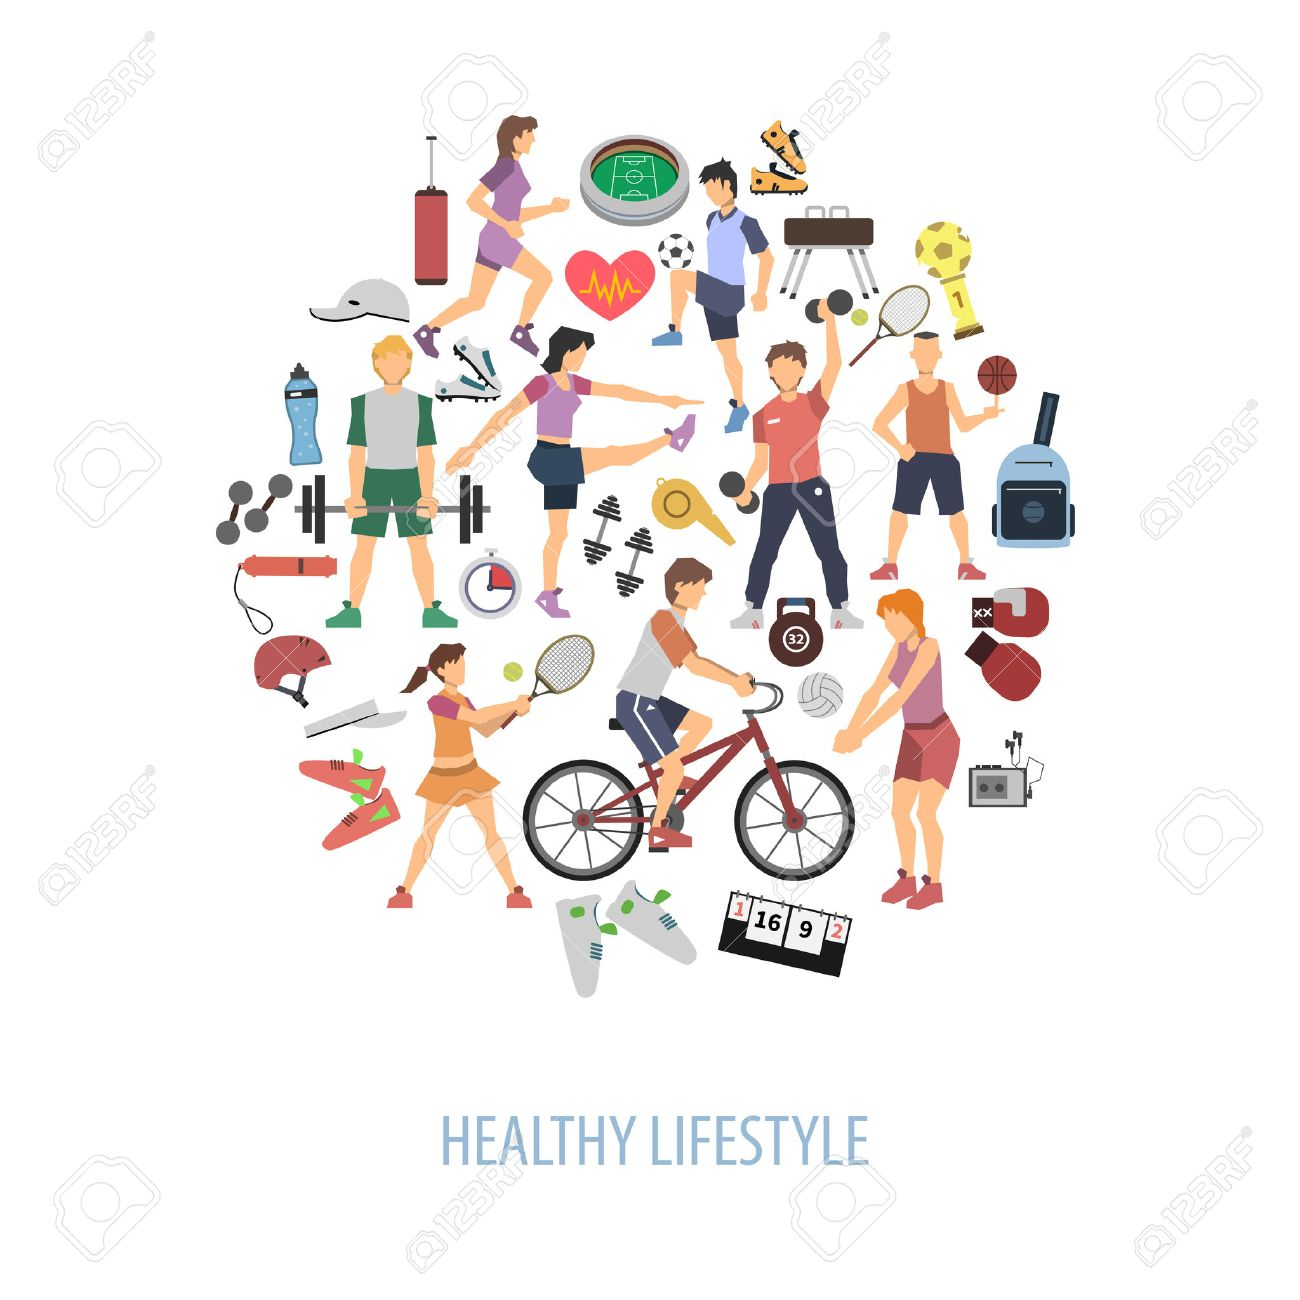 Healthy lifestyle concept with people playing sport games flat vector illustration - 41892056